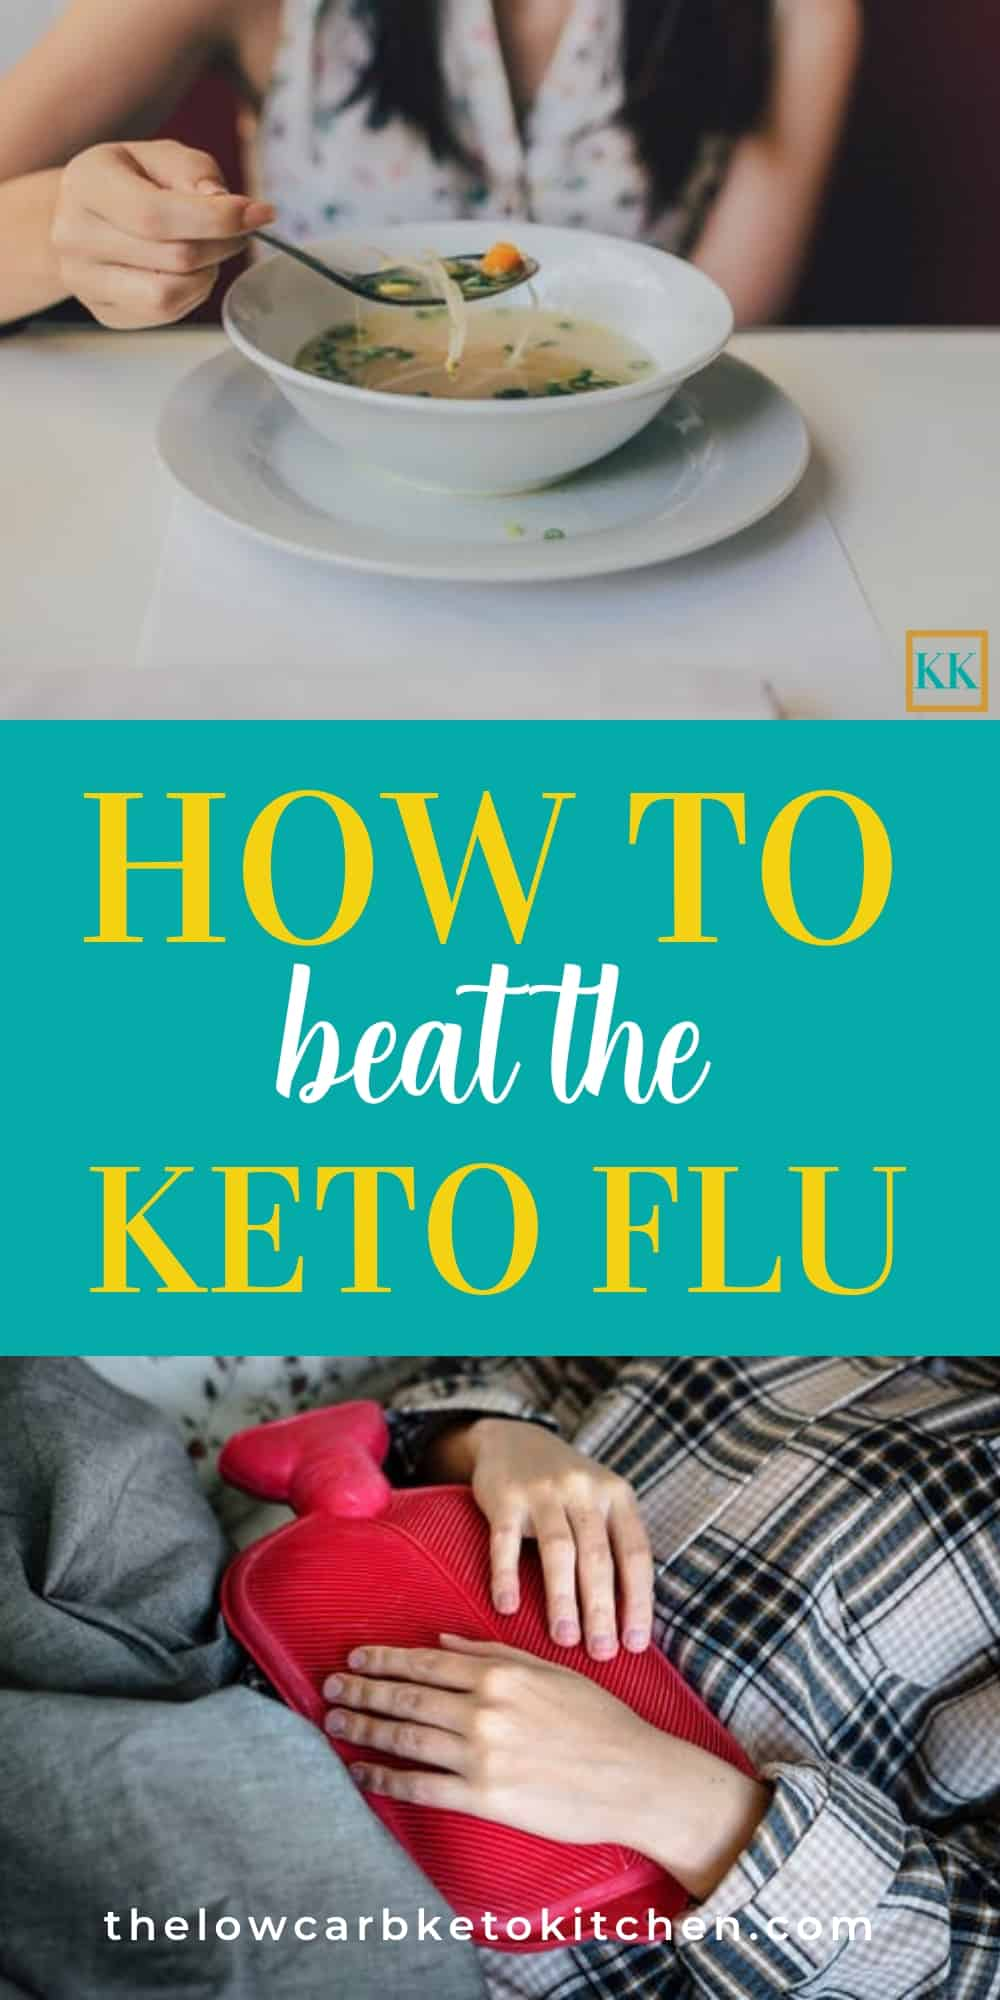 How to Beat the Keto Flu